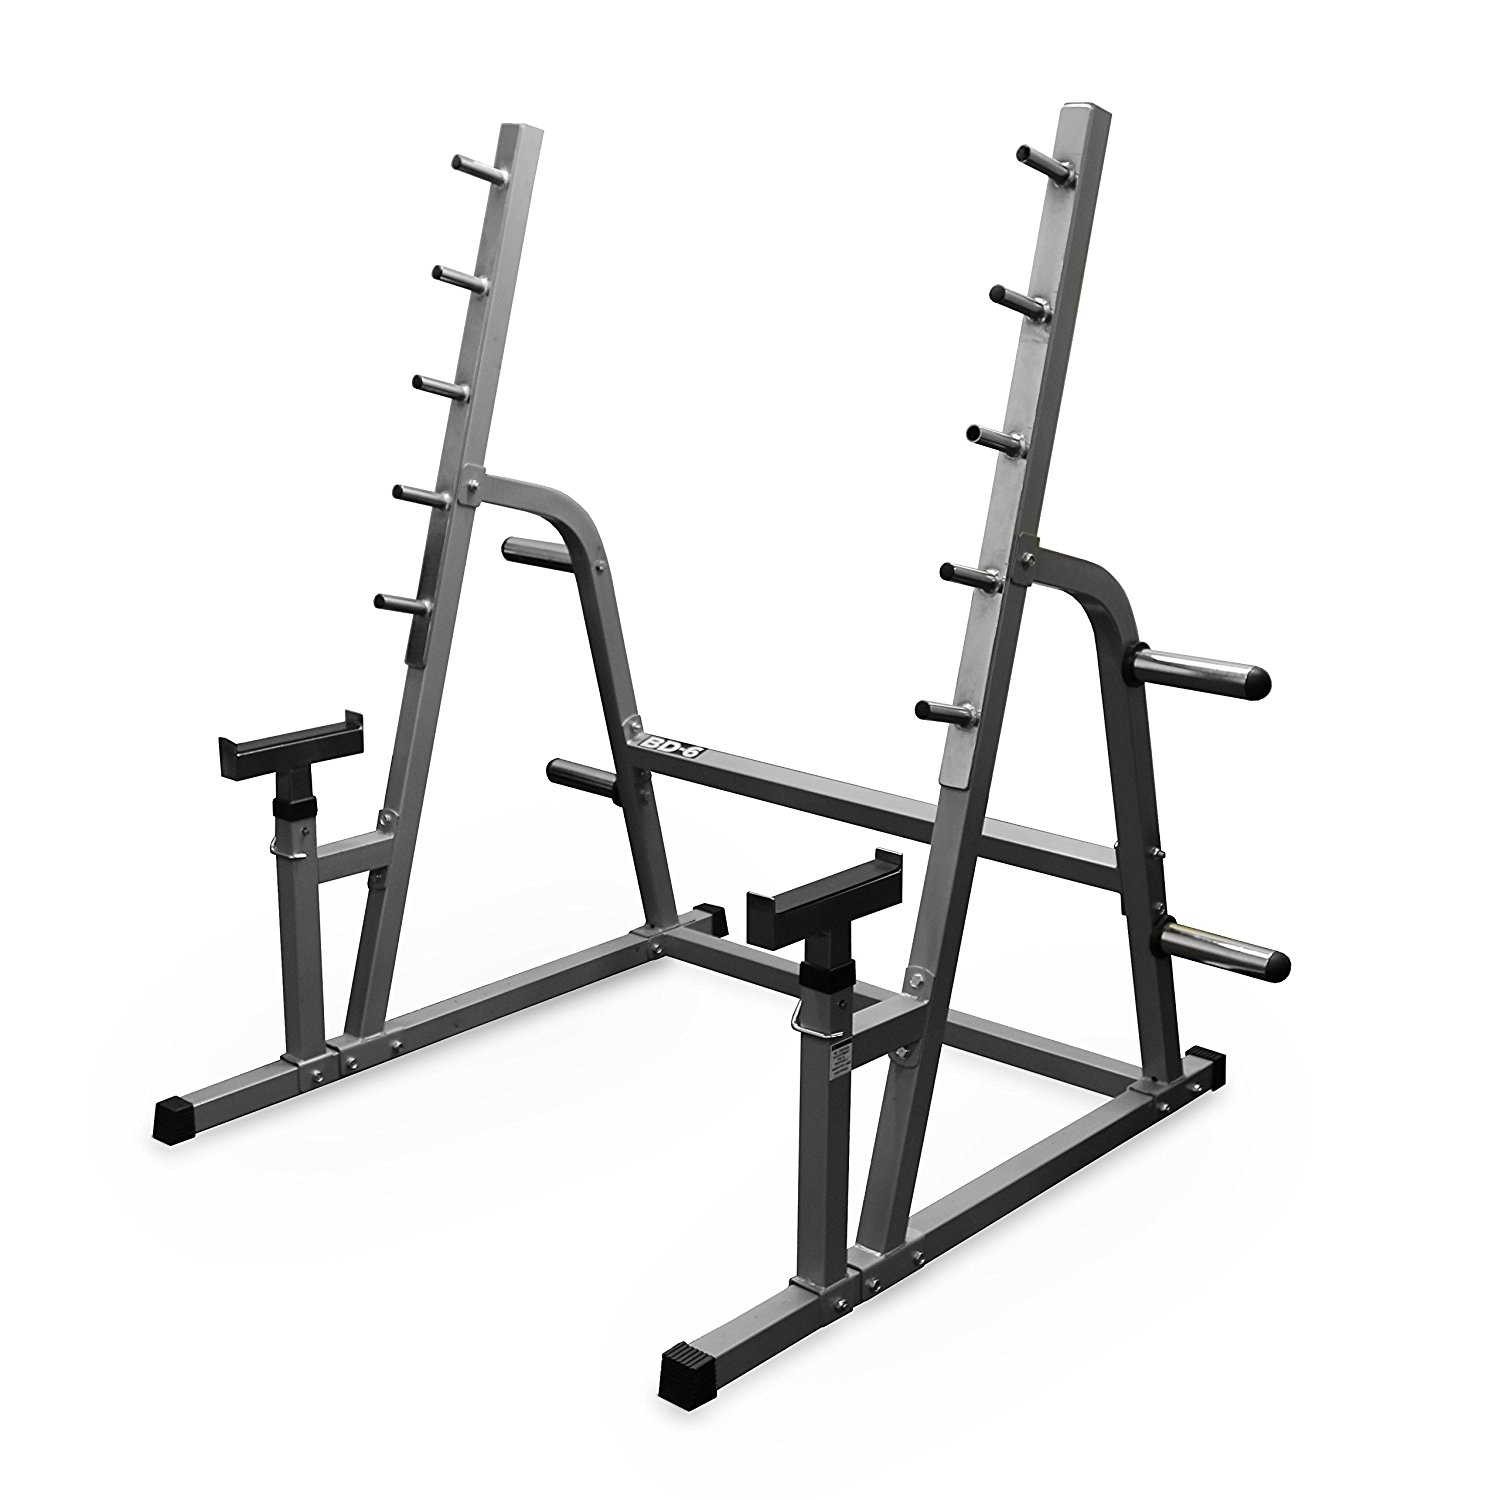 review power reviewed best lat athletics pull squat valor the racks pro bd with inc bench top rack money press fitness for